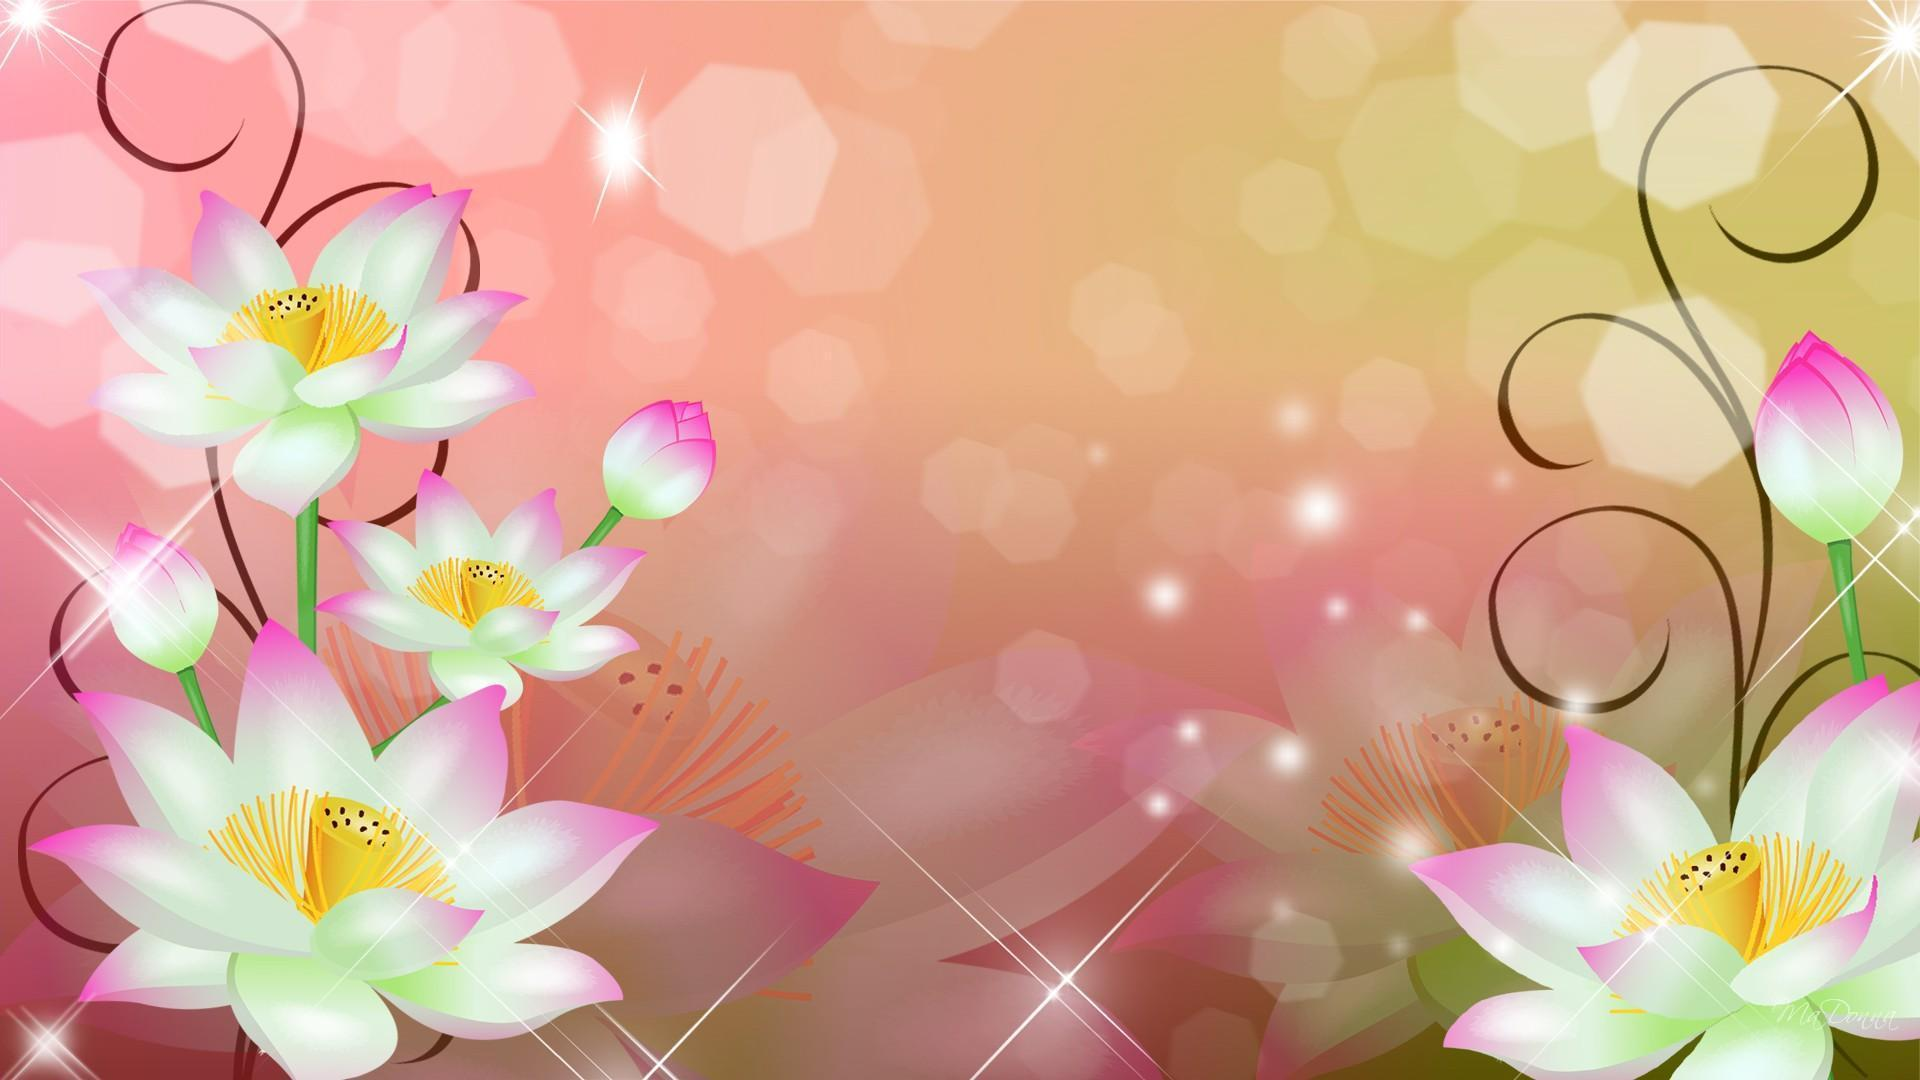 Flowers Wallpapers - Wallpaper Cave